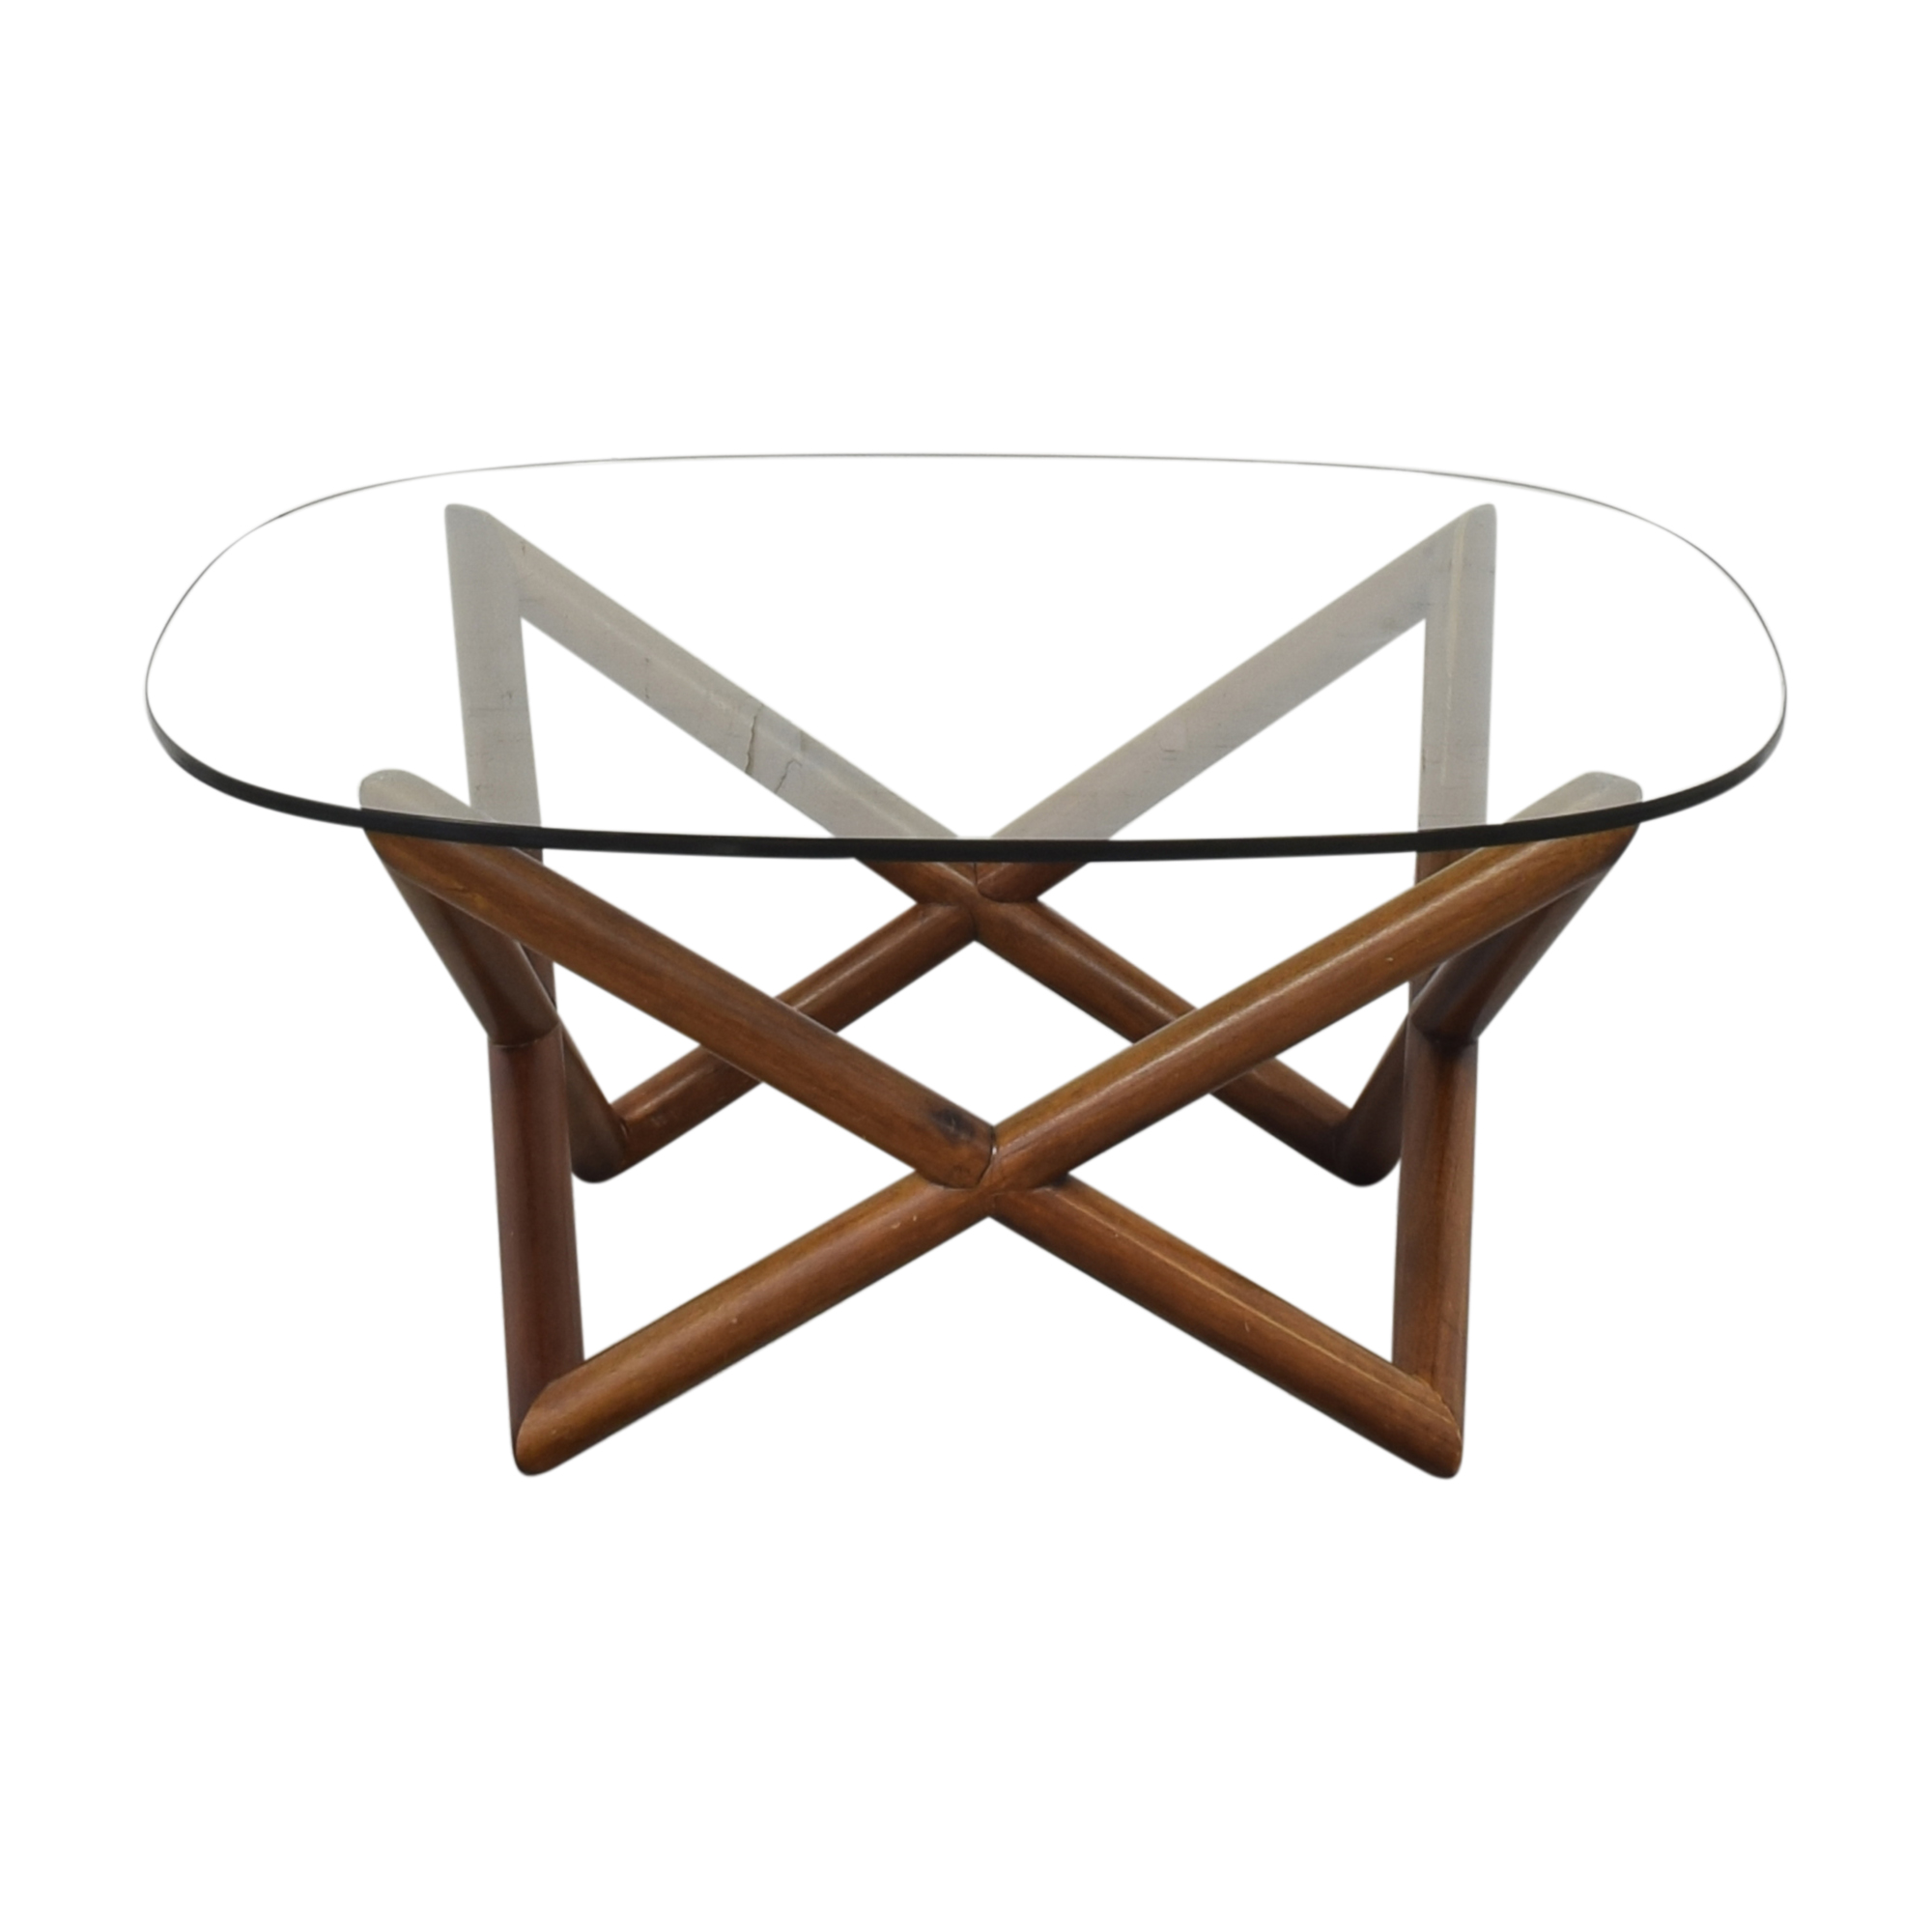 West Elm West Elm Spindle Coffee Table coupon